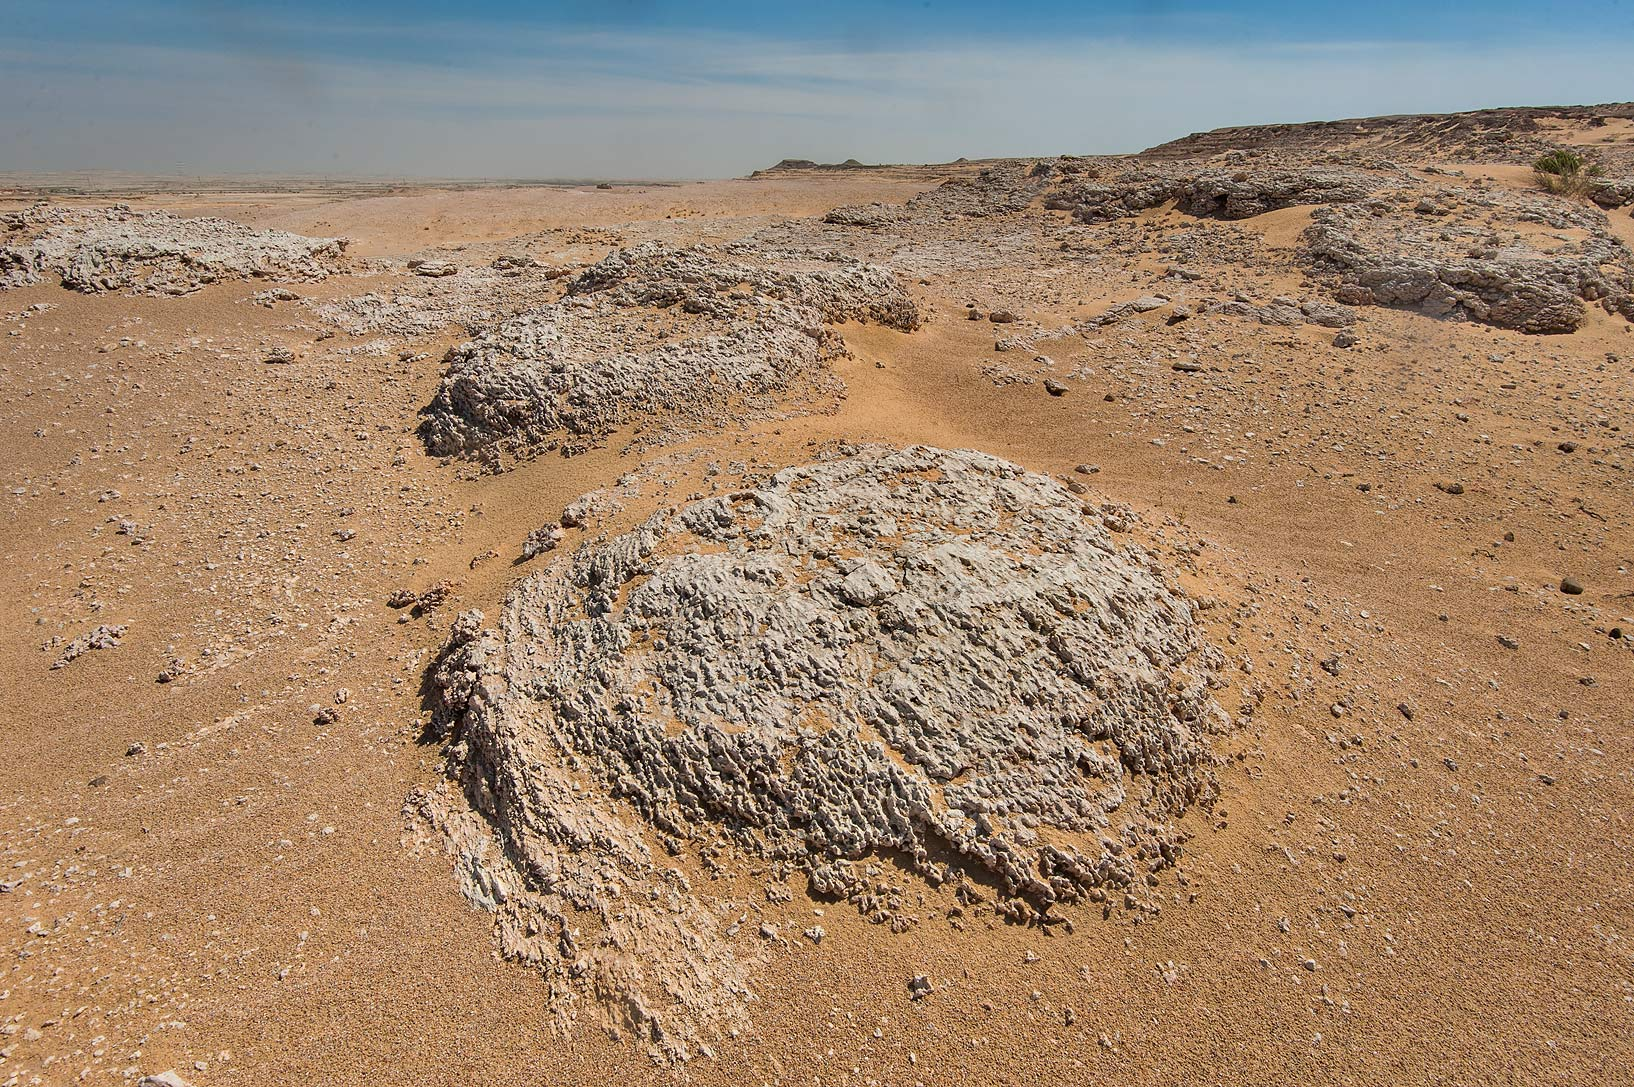 Domes of fossilized stromatolites (microbial mats...Jebel Al-Nakhsh in south-western Qatar